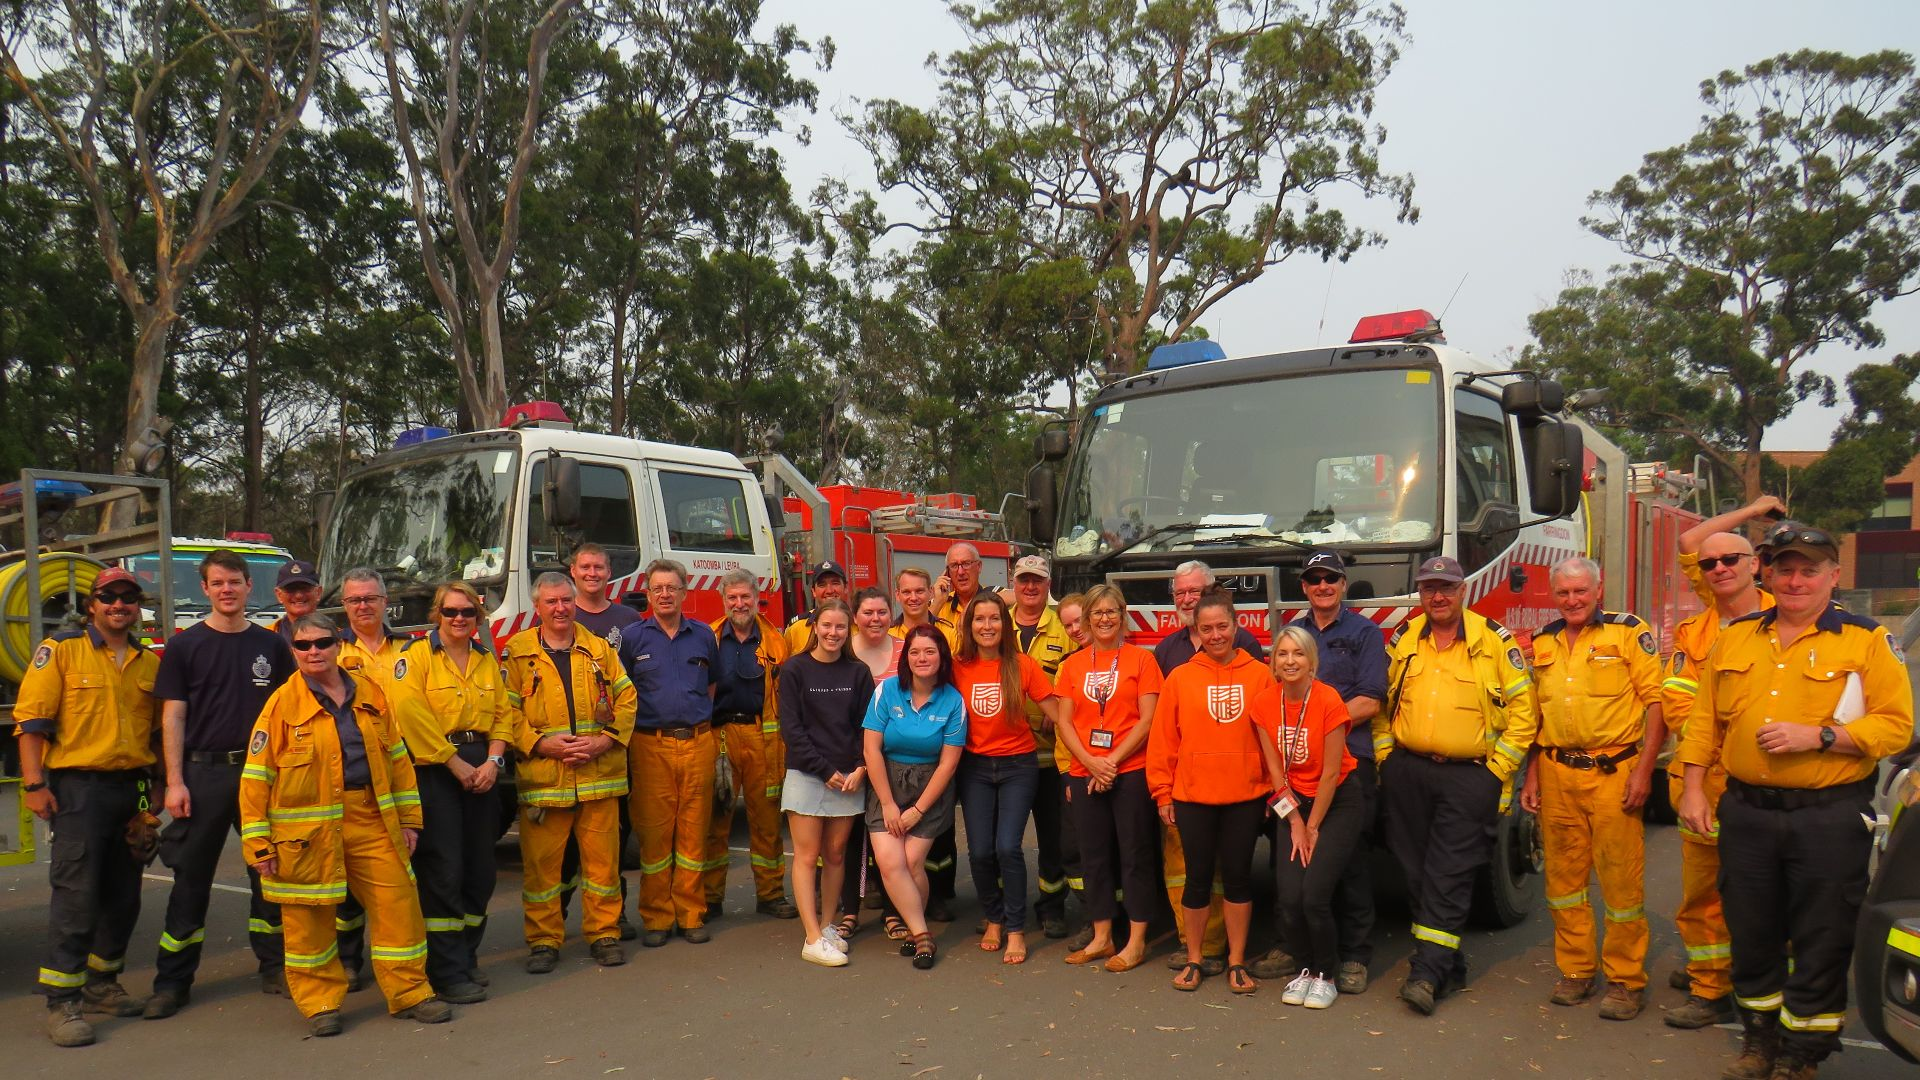 Charles Sturt creates new scholarship fund to help students impacted by bushfires